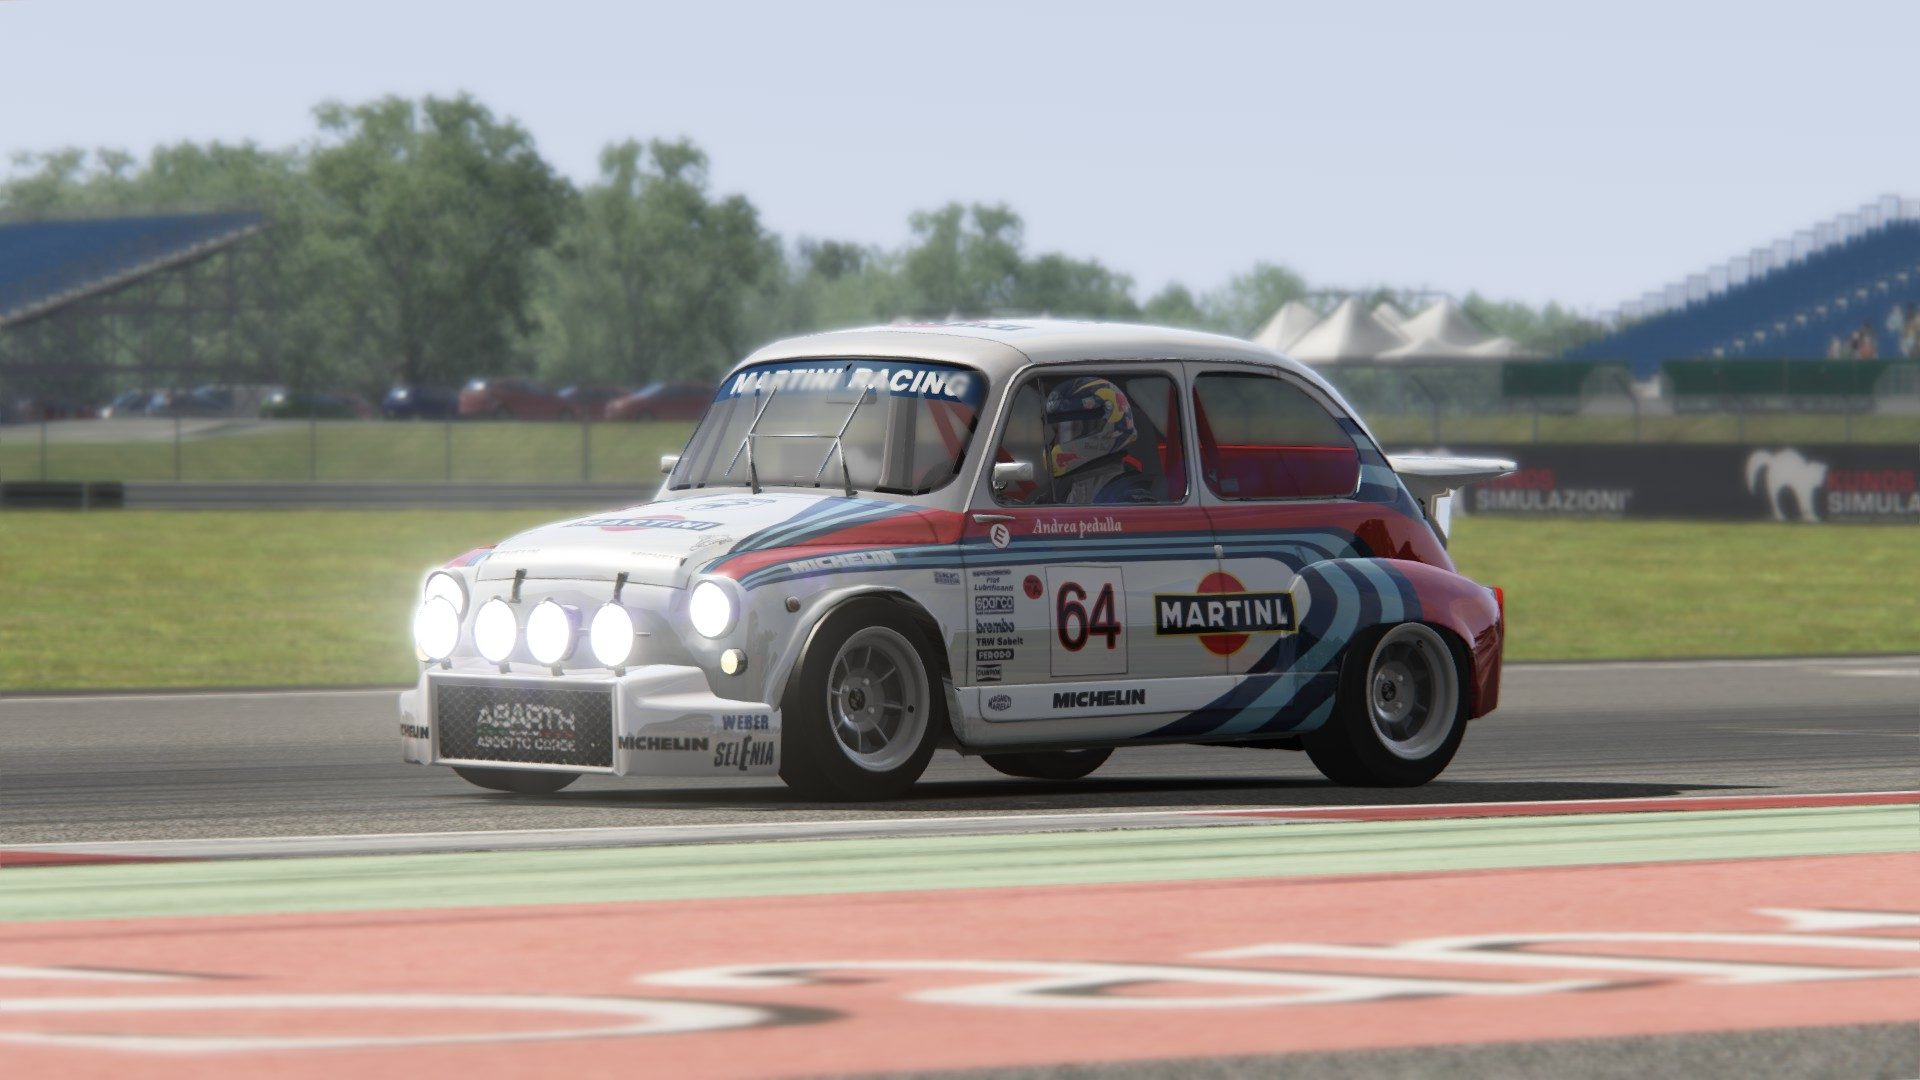 PC - Assetto Corsa PC Mod Discussion | Page 135